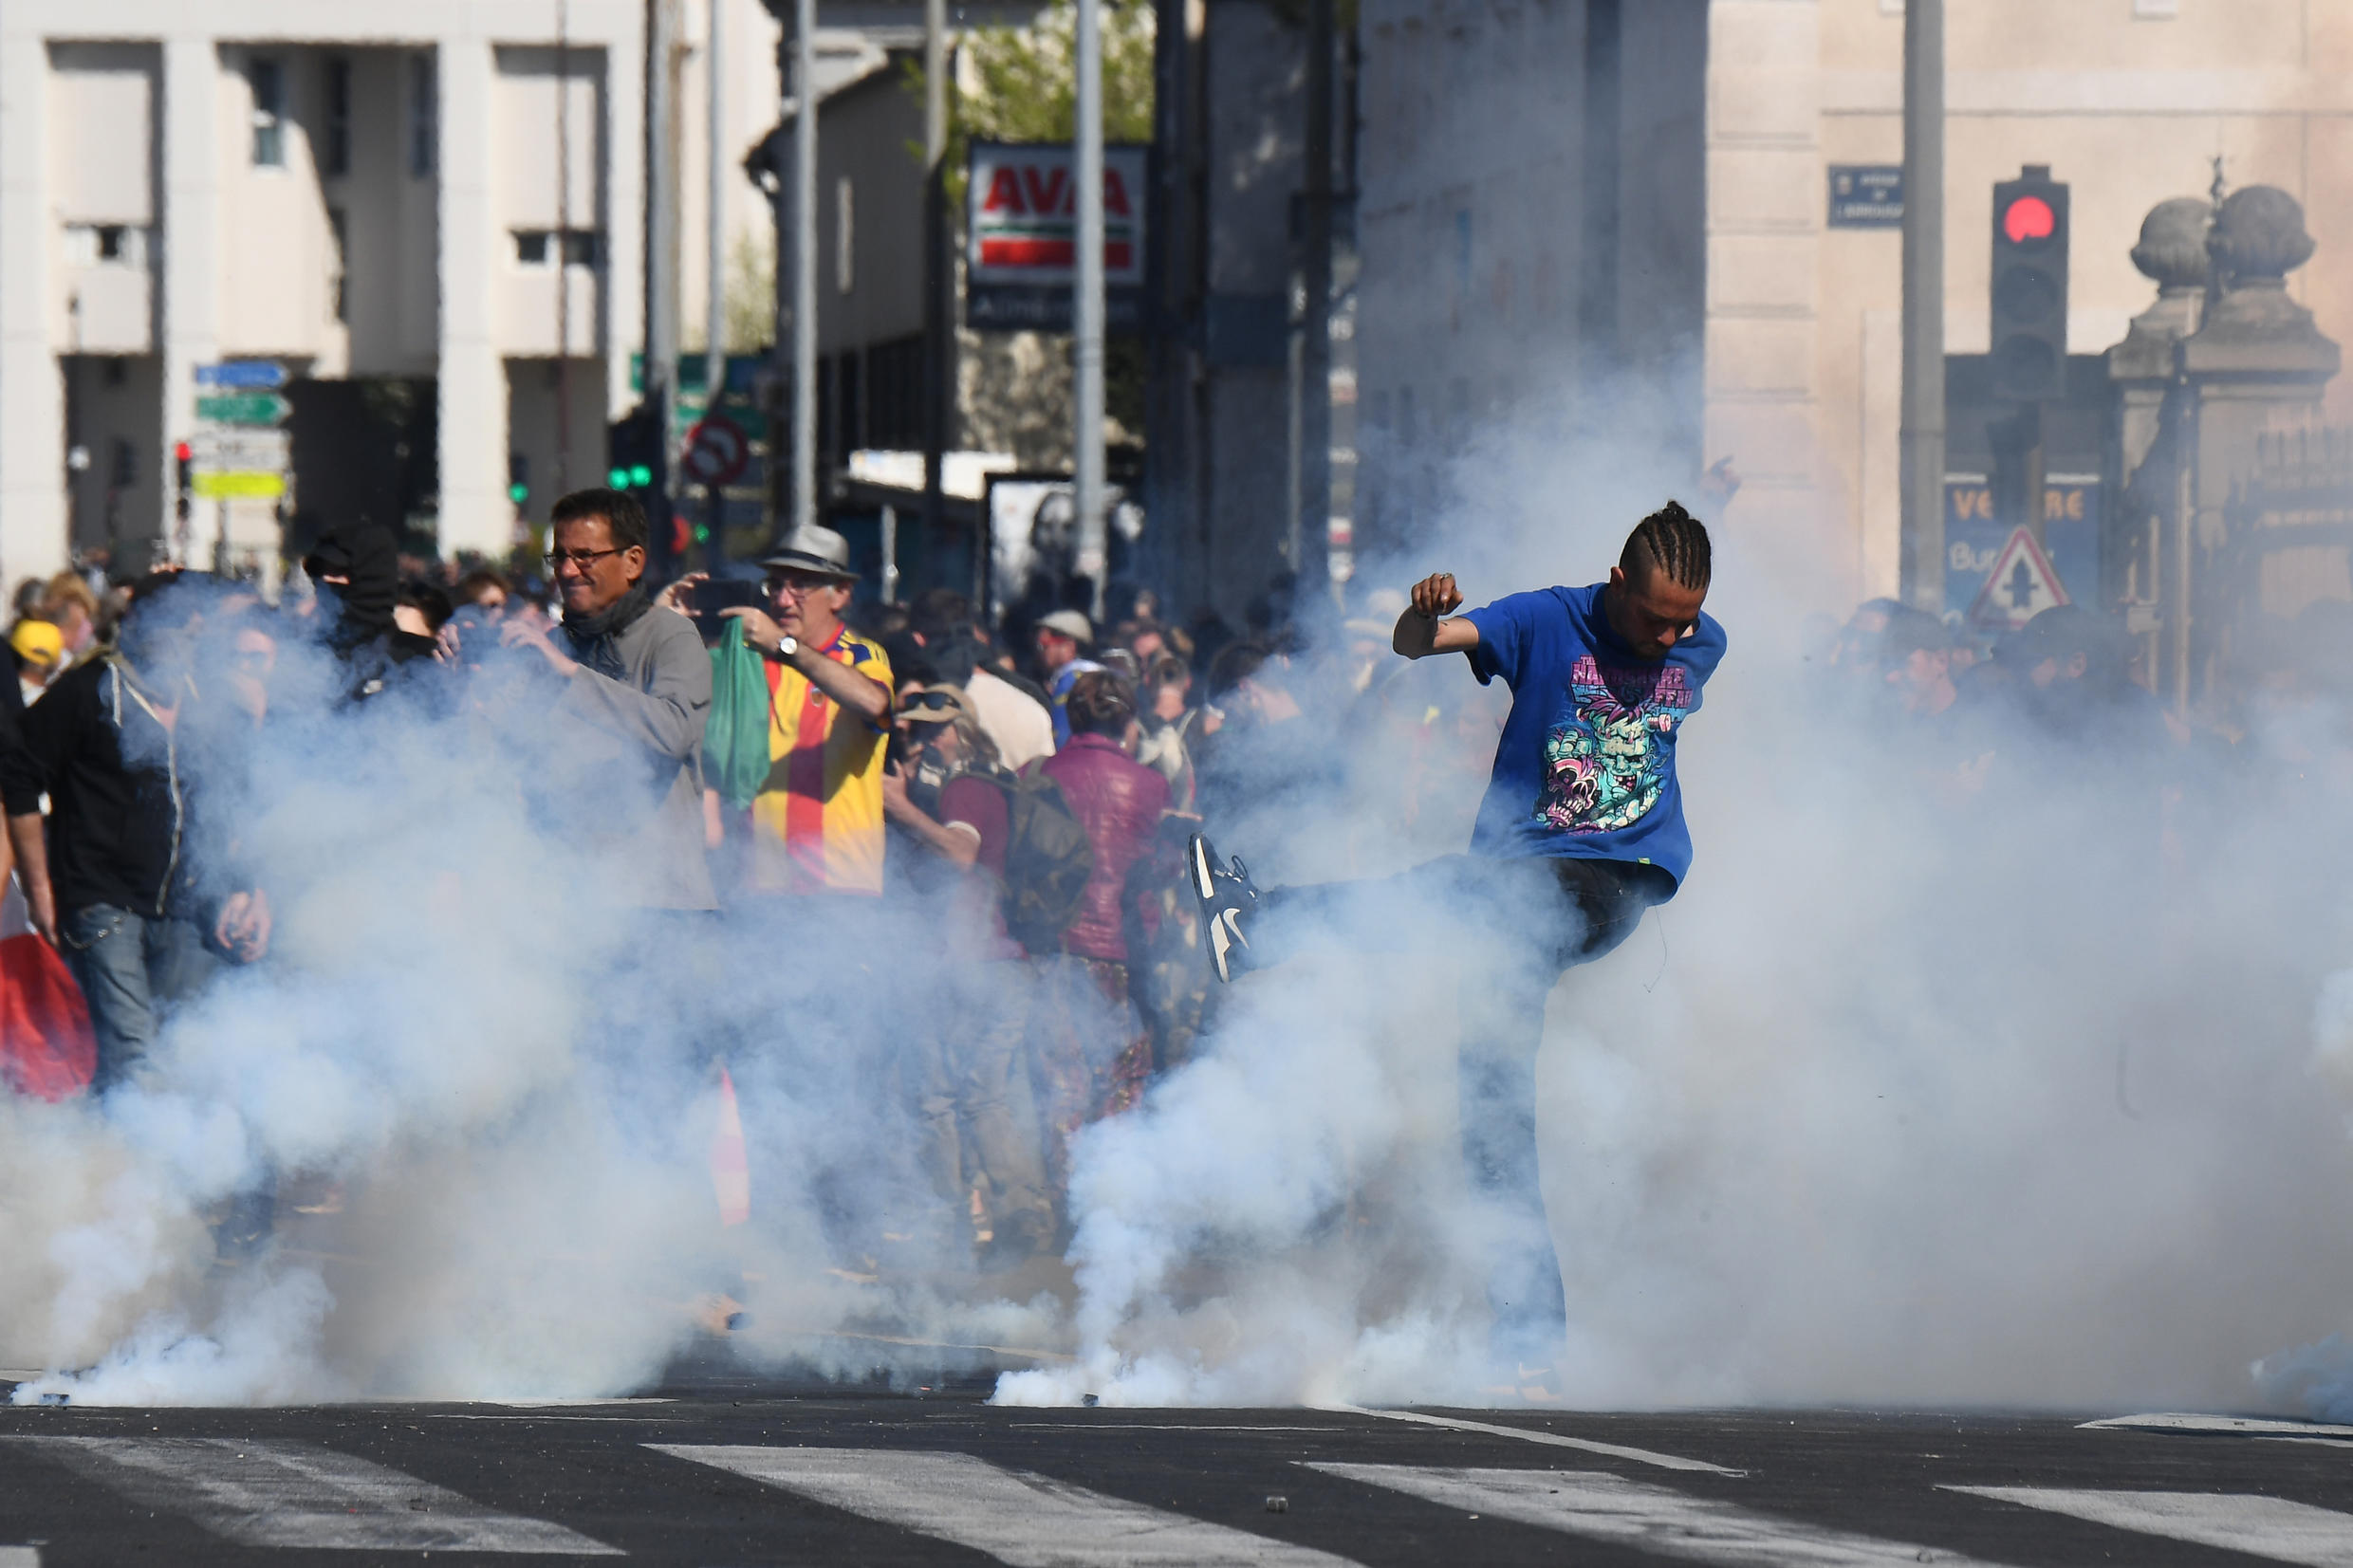 A protester kicks back a tear gas canister during clashes with police at a demonstration in Avignon southeastern France, 30 March 2019.